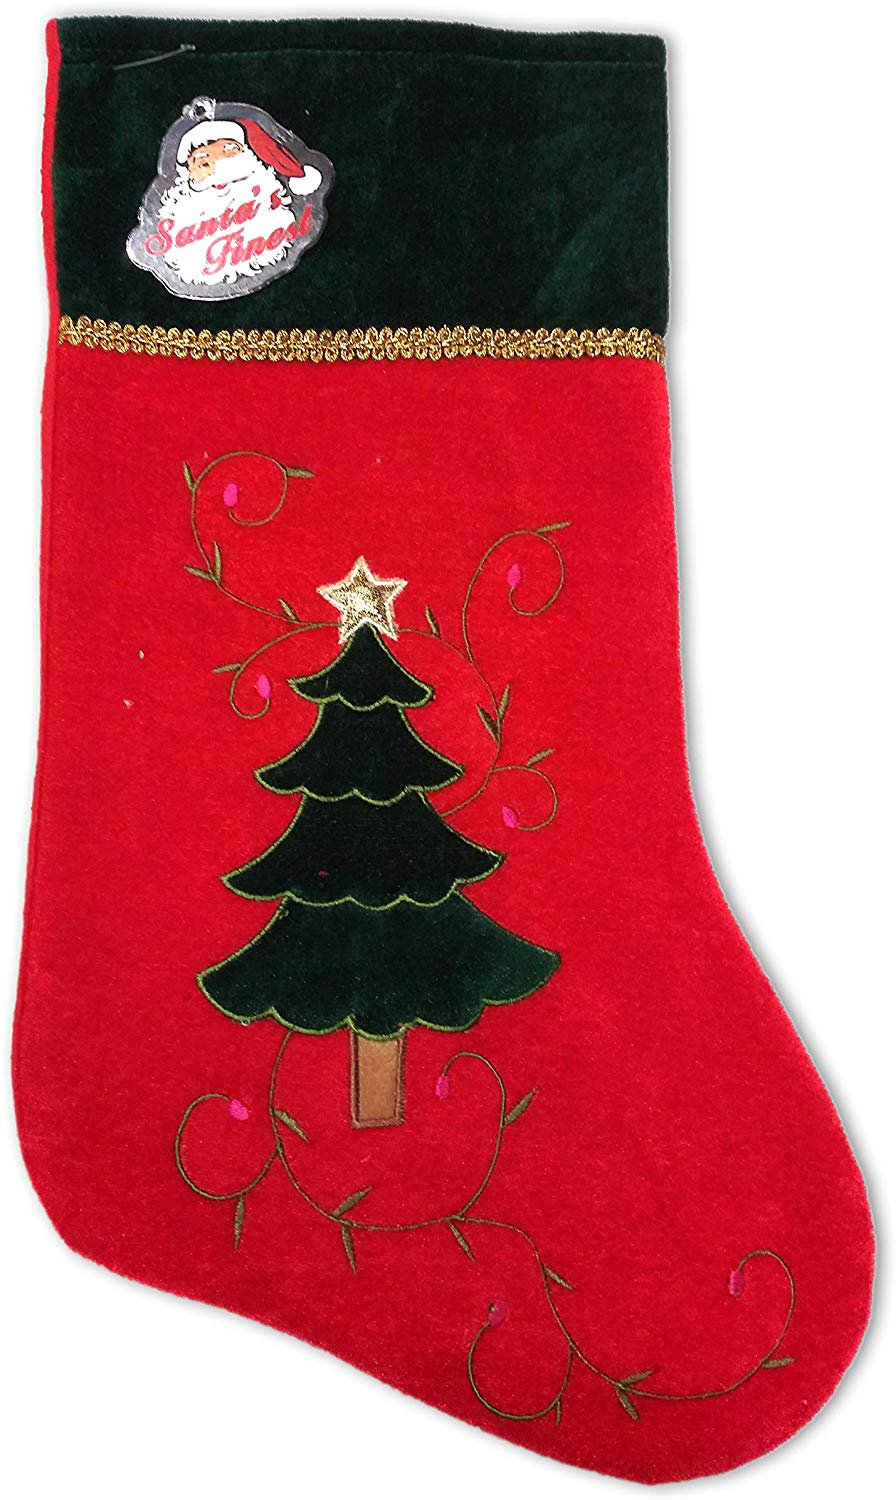 SANTA'S FINEST Christmas Stockings, 19 Inch